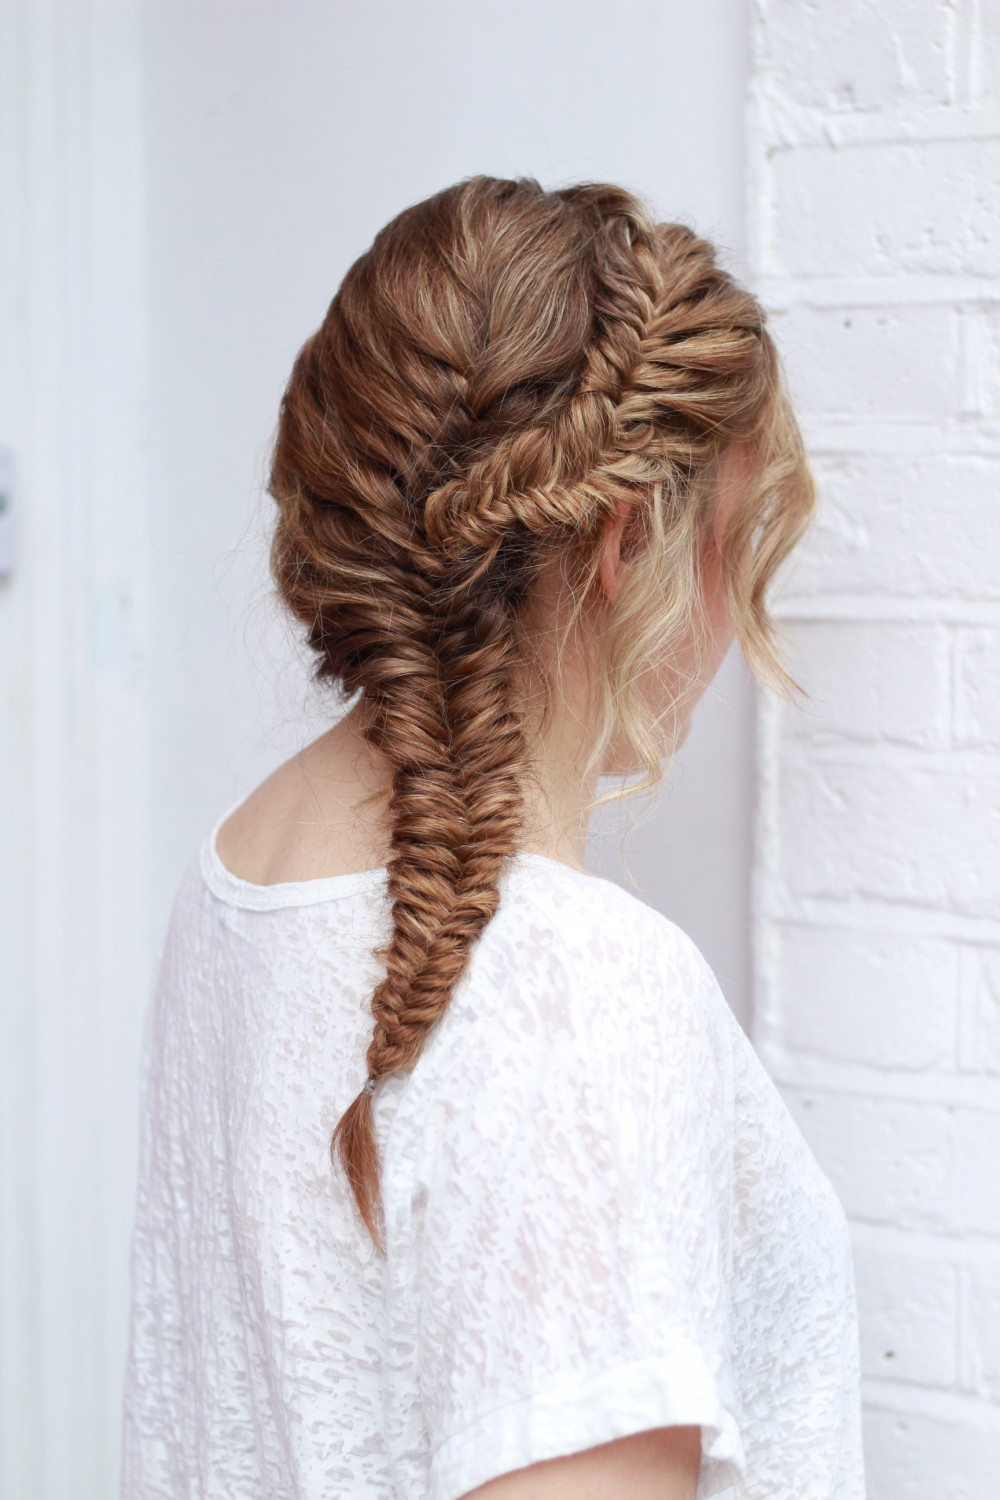 This soft, loose fishtail braid, would look beautiful on either bride or bridesmaid. - Make Me Bridal Artist: Amanda Roberts Hair & Makeup. Photography by: Amanda Roberts. #bohemian #boho #bridalhair #updo #fishtailbraid #fishtail #plait